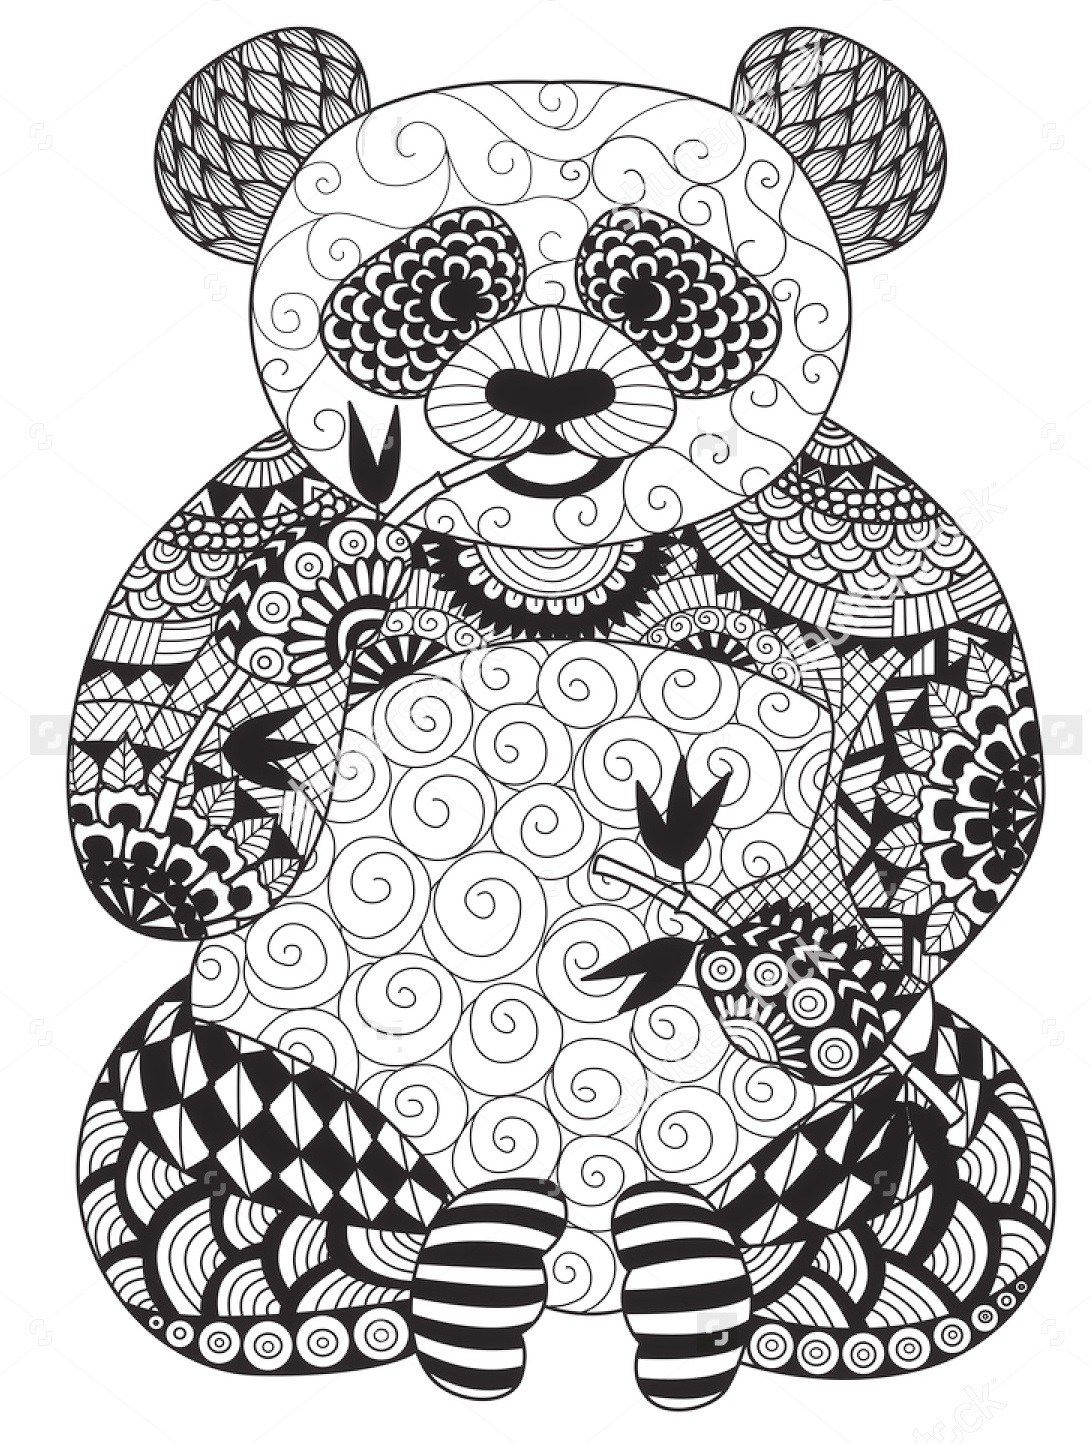 Vector Zentangle Panda Coloring Page Art Coloring Pages Designs